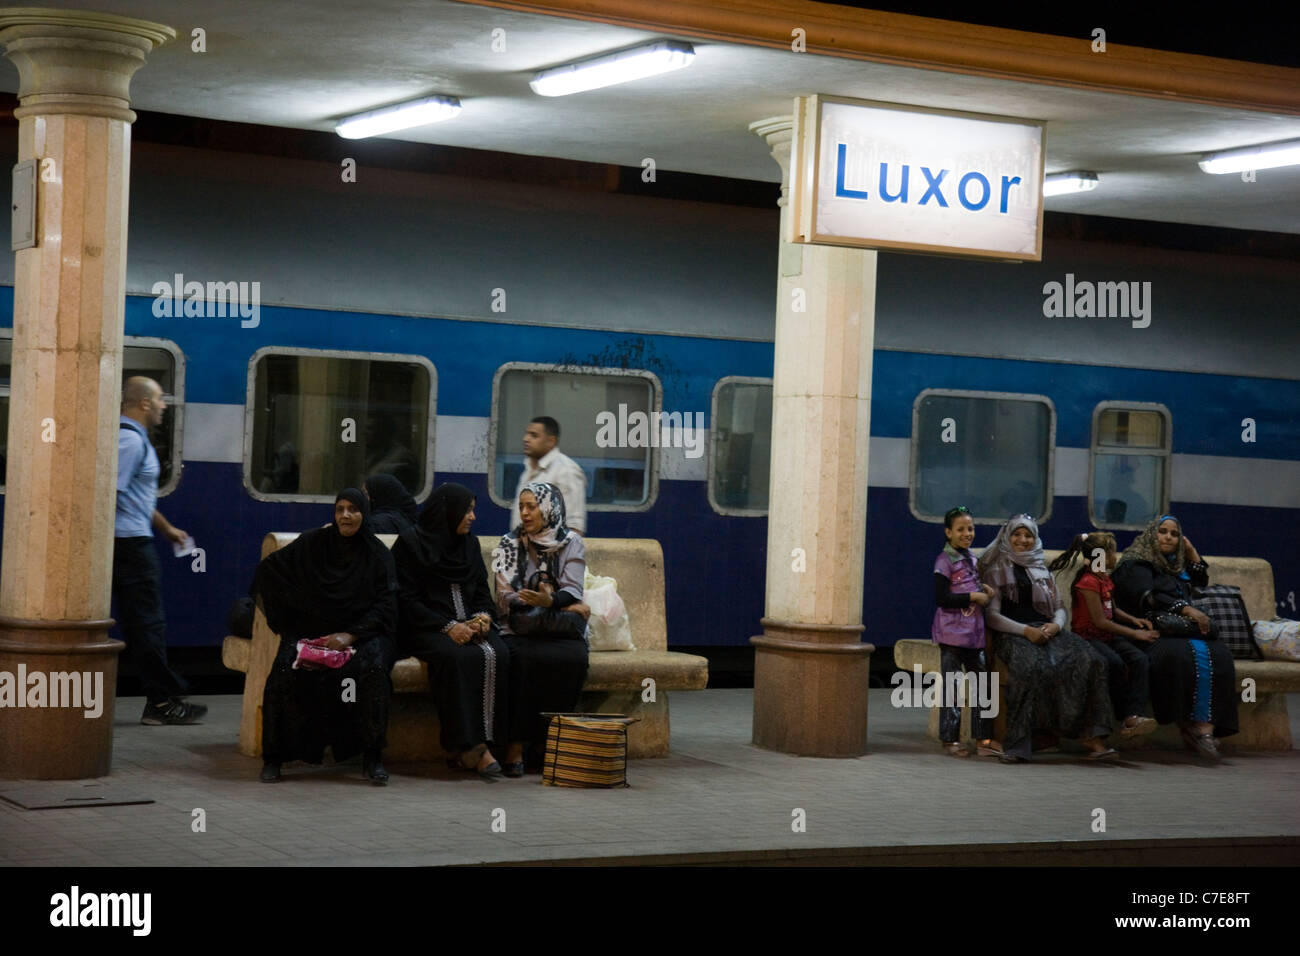 Waiting for the sleeper train on the platform at Luxor - Stock Image